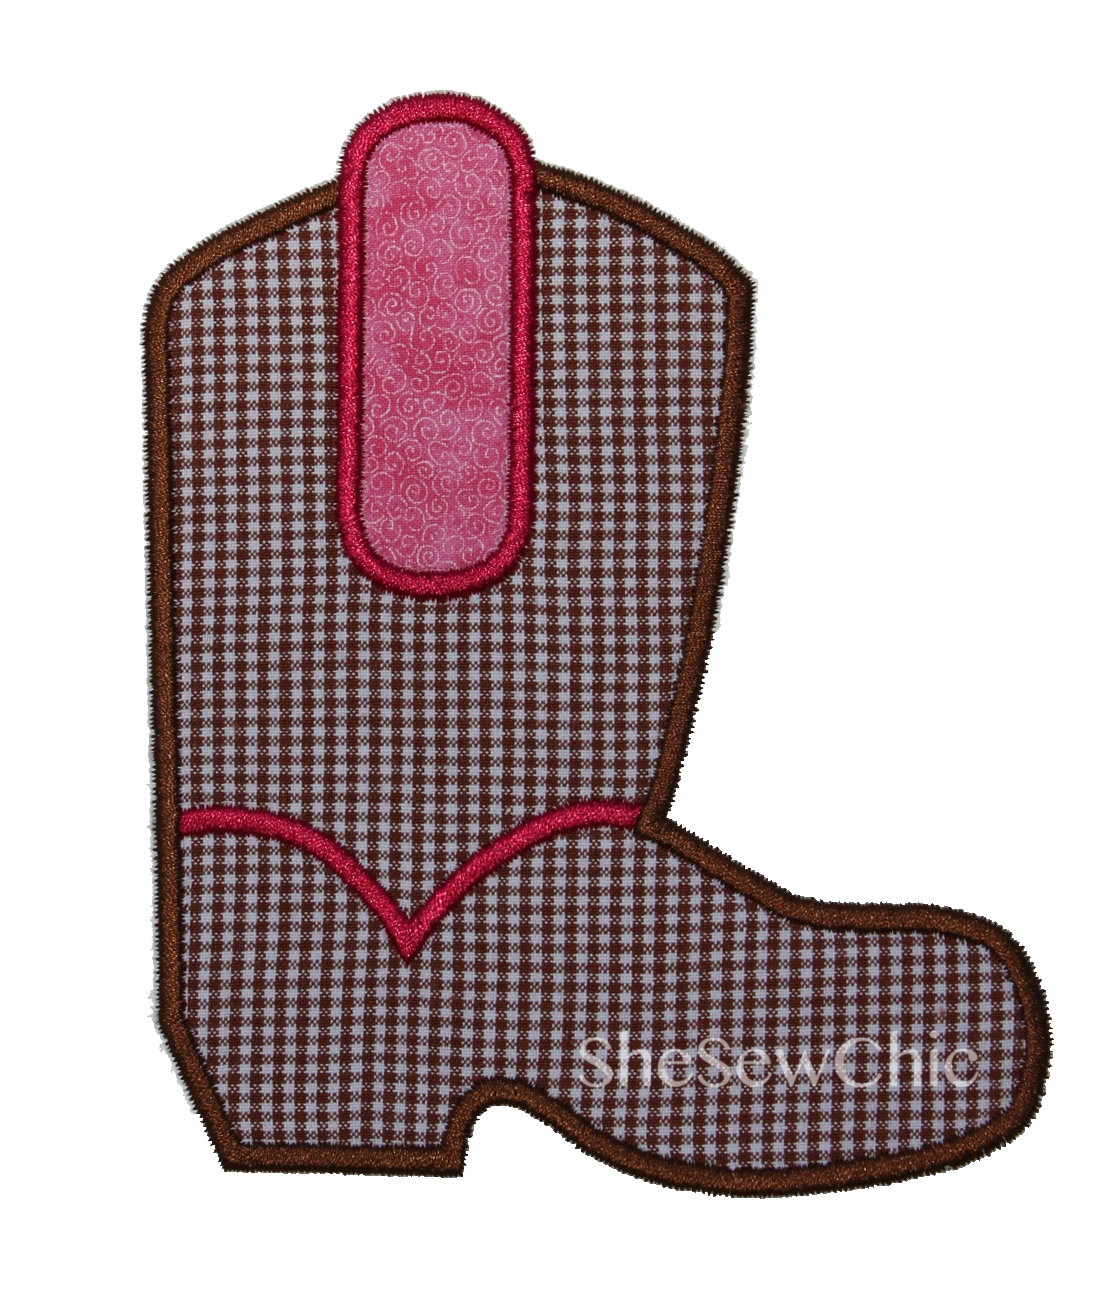 Cowboy Boot-Cowboy Boot Boot Cowgirl Western SheSewChic